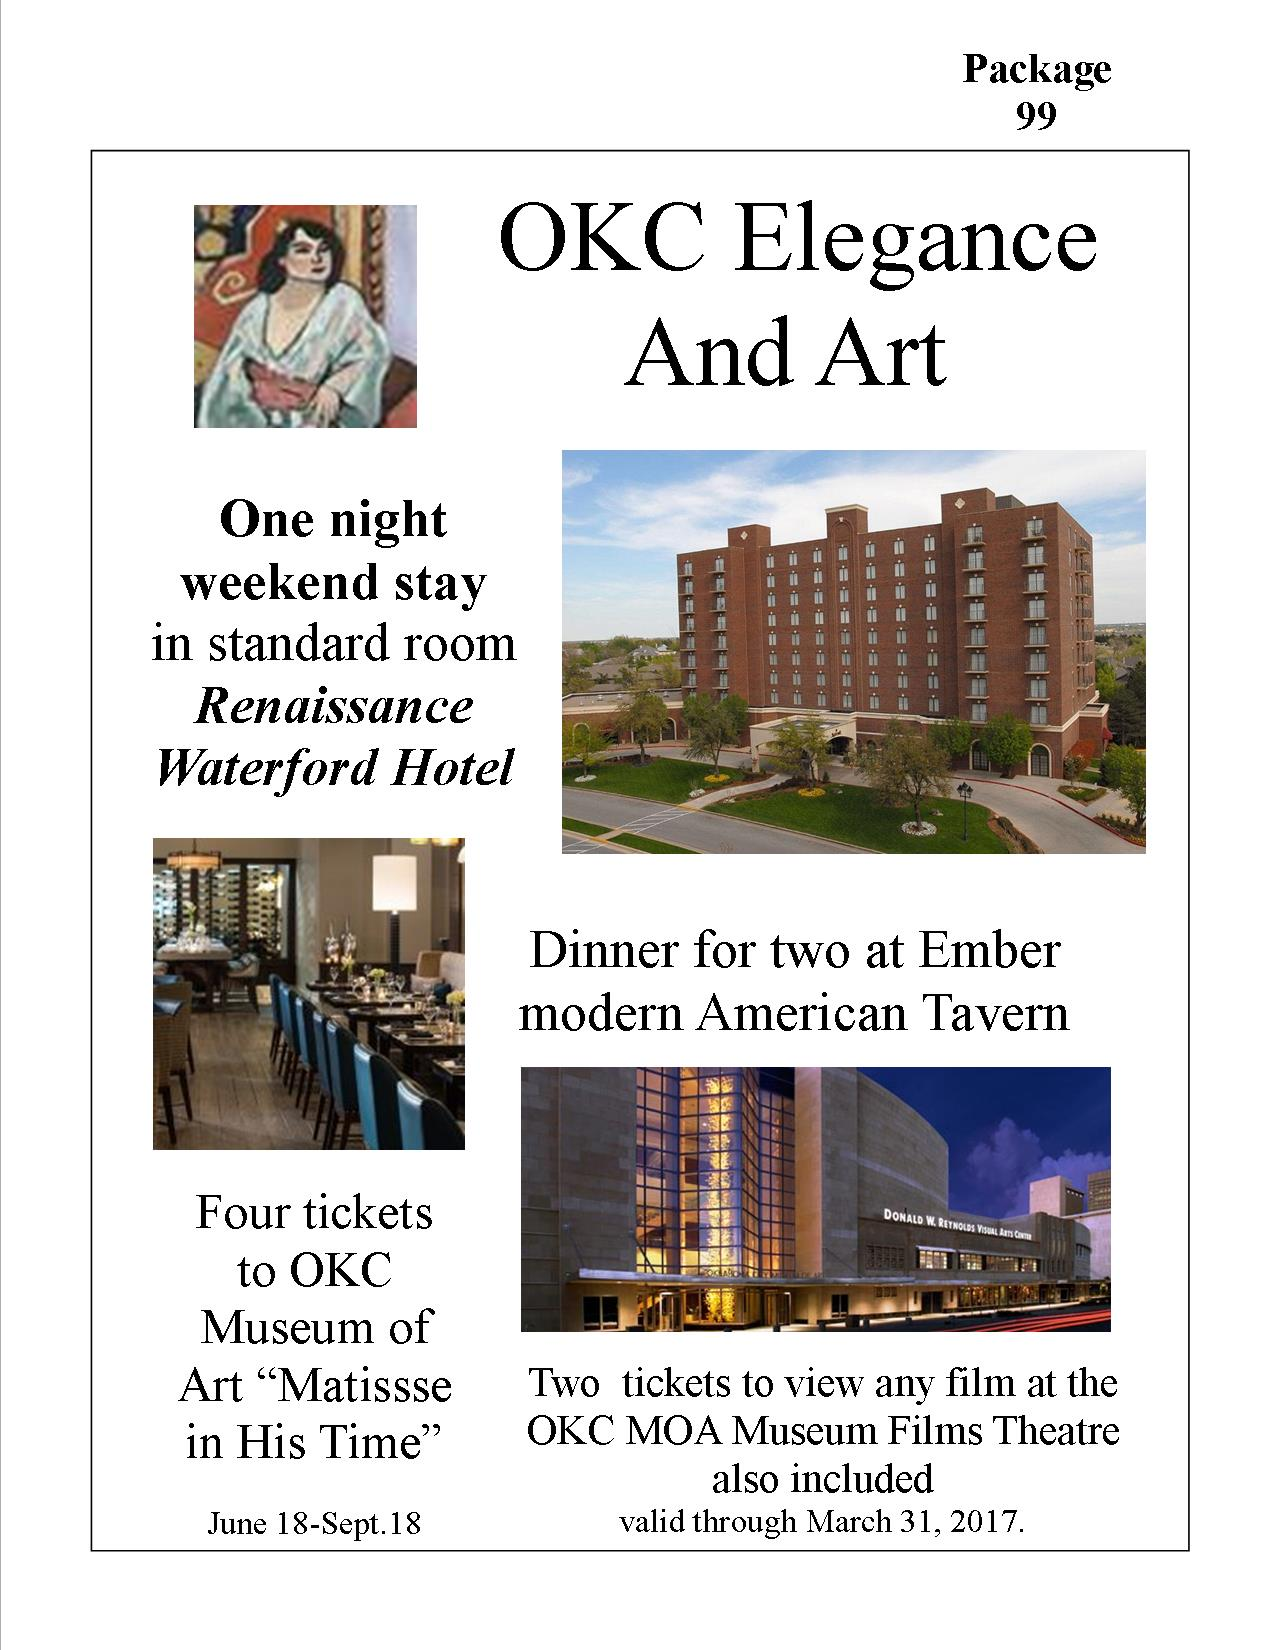 OKC Elegance and Art # 99 revised.jpg